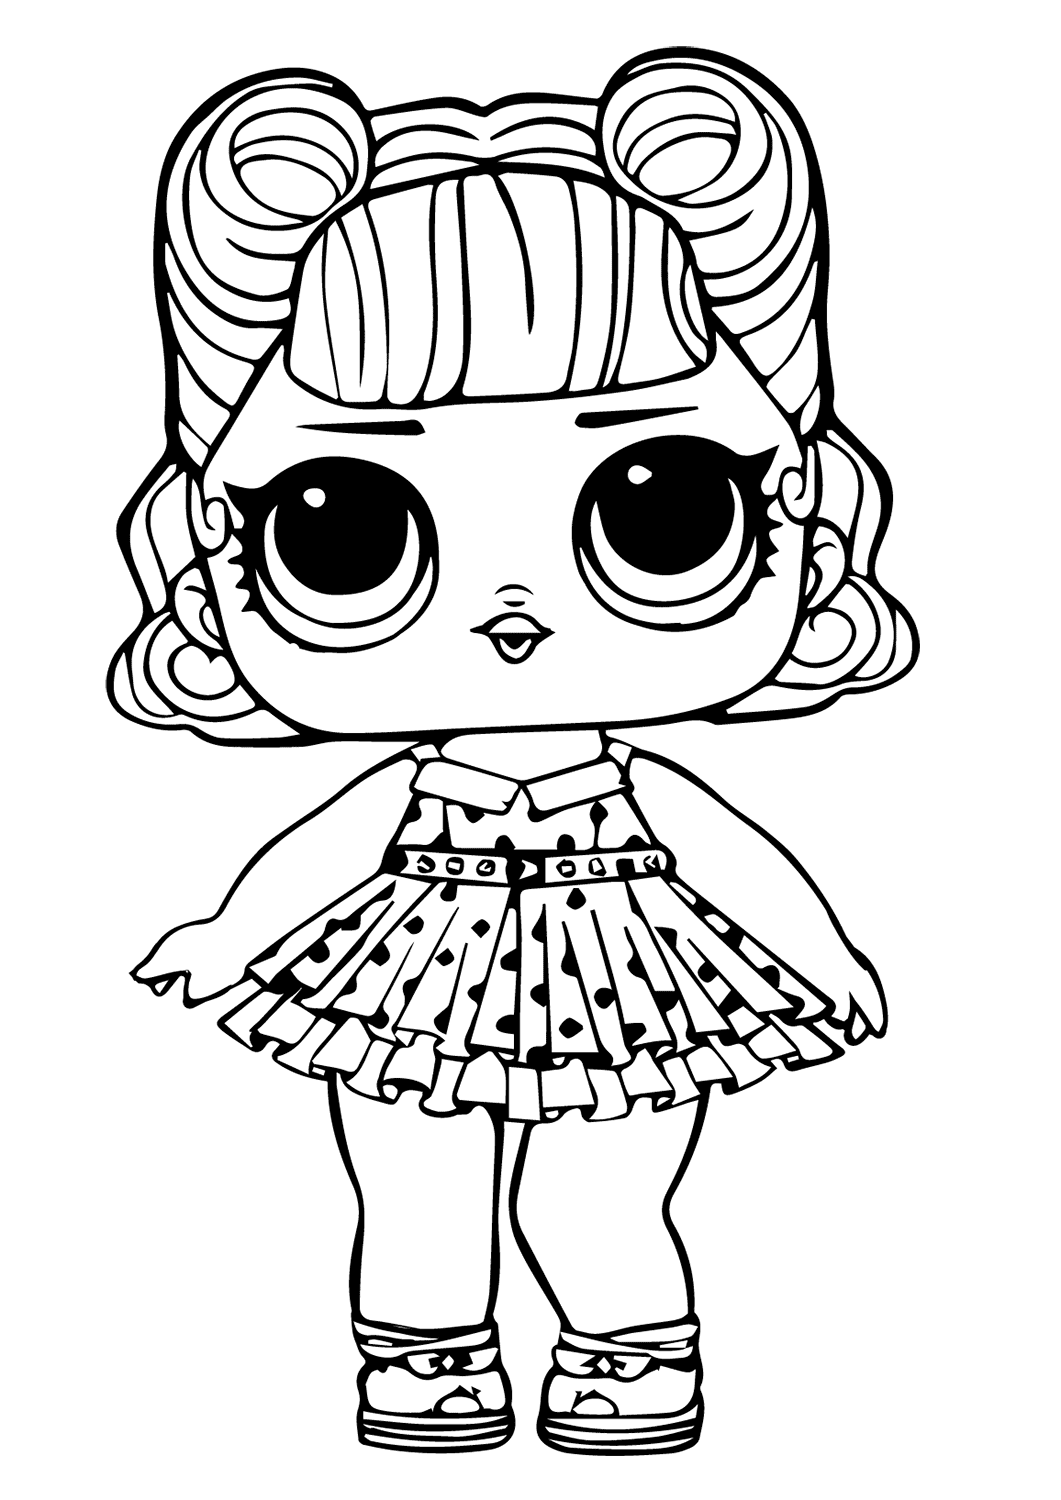 Amazed children black and white clipart black and white Coloring Pages : Coloring Sketches For Kids Pictures Christmas ... black and white